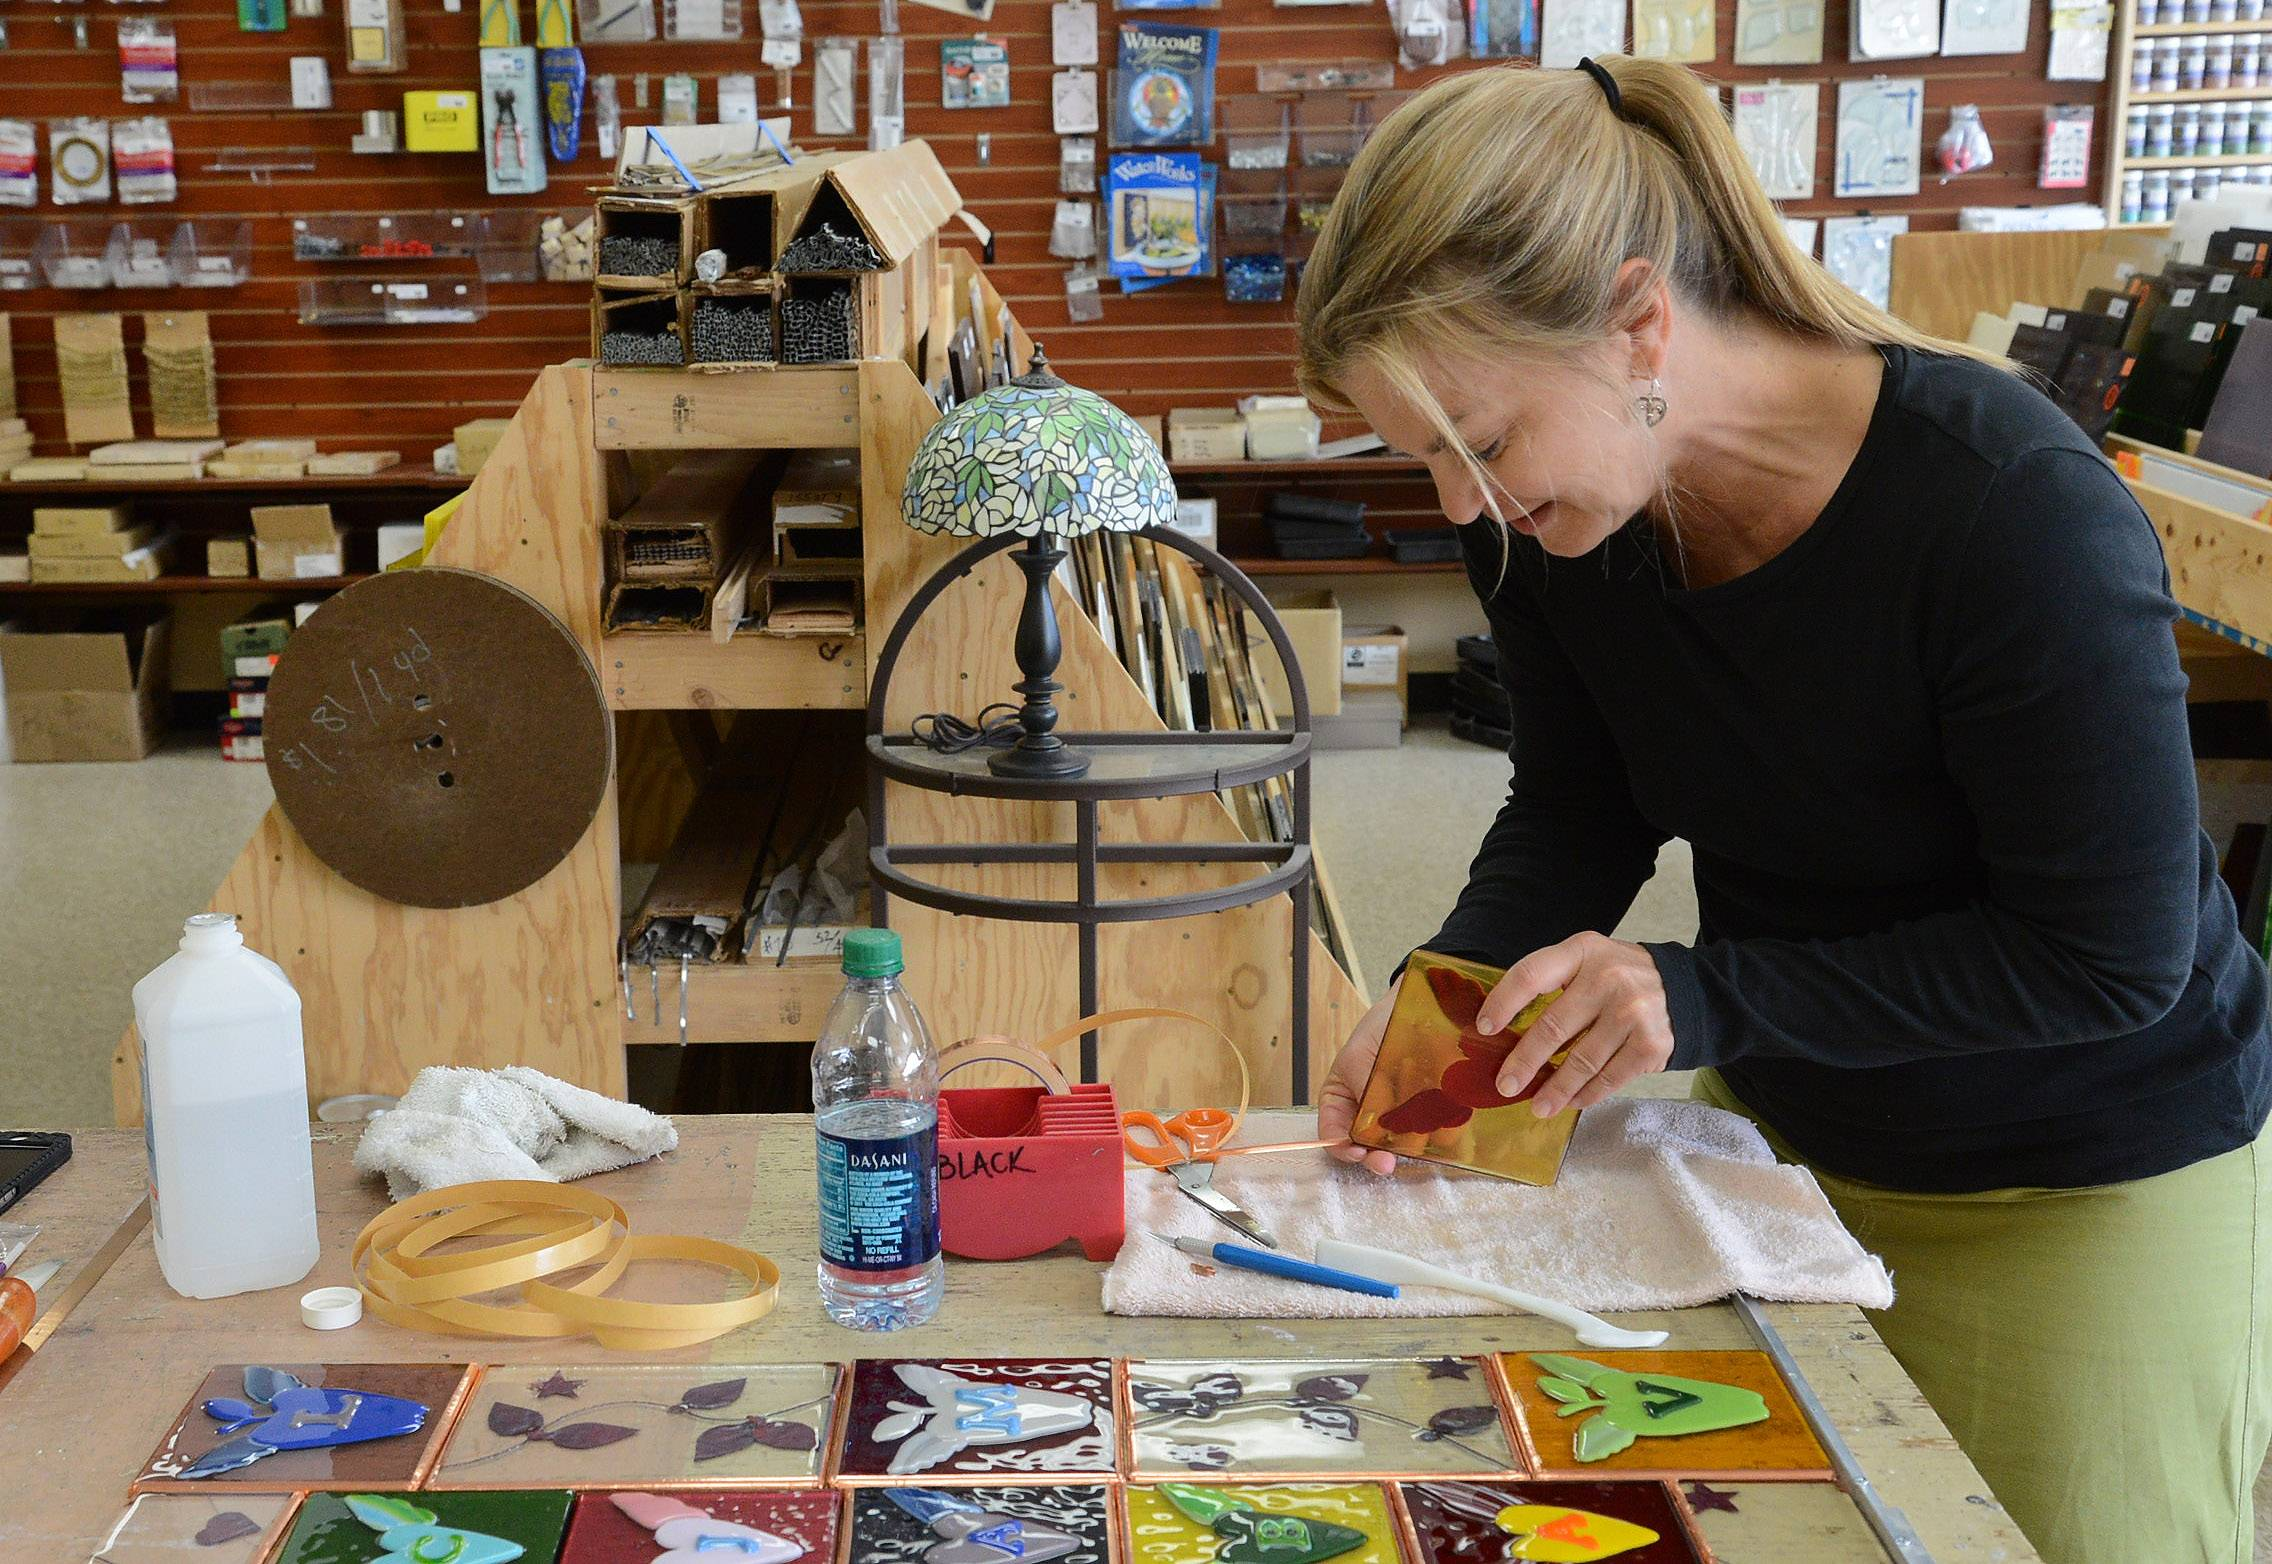 Patti Muller of New Orleans is making a stained glass quilt in remembrance of the 2012 Sandy Hook school shooting in Connecticut. Here, she is applying copper tape to the sides of each piece.